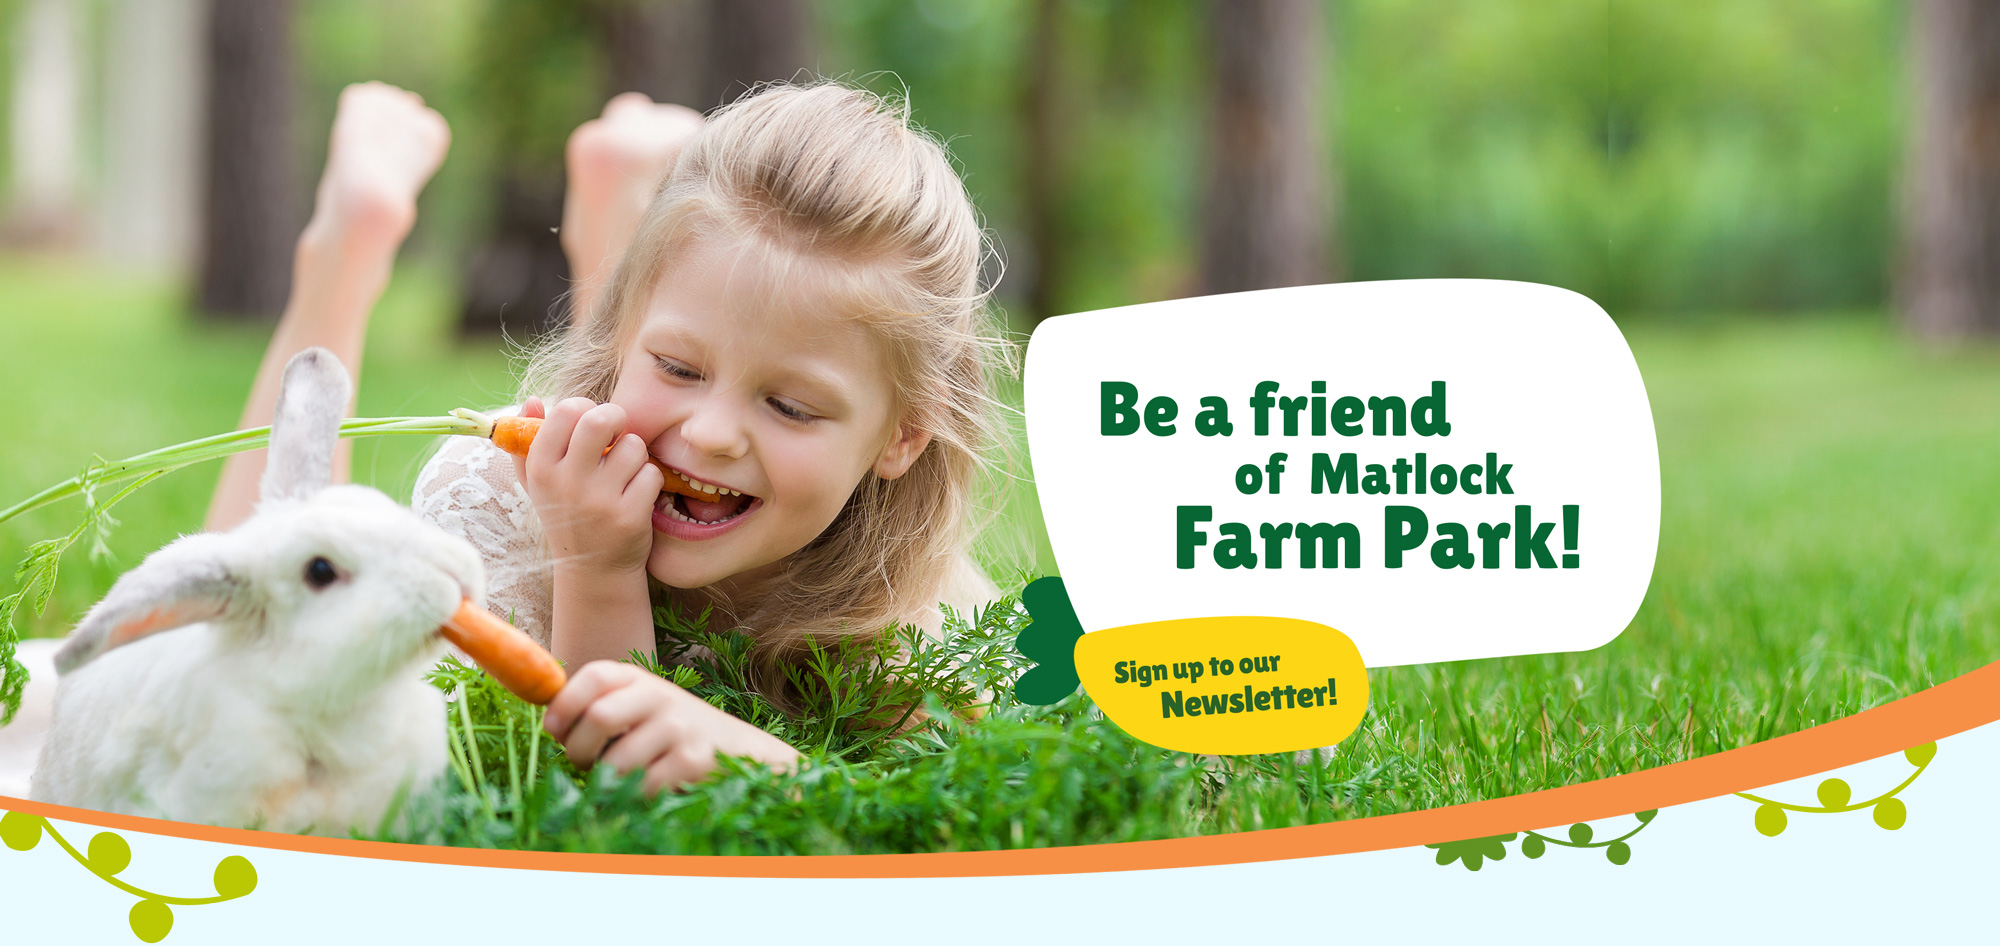 Be a friend of Matlock Farm Park